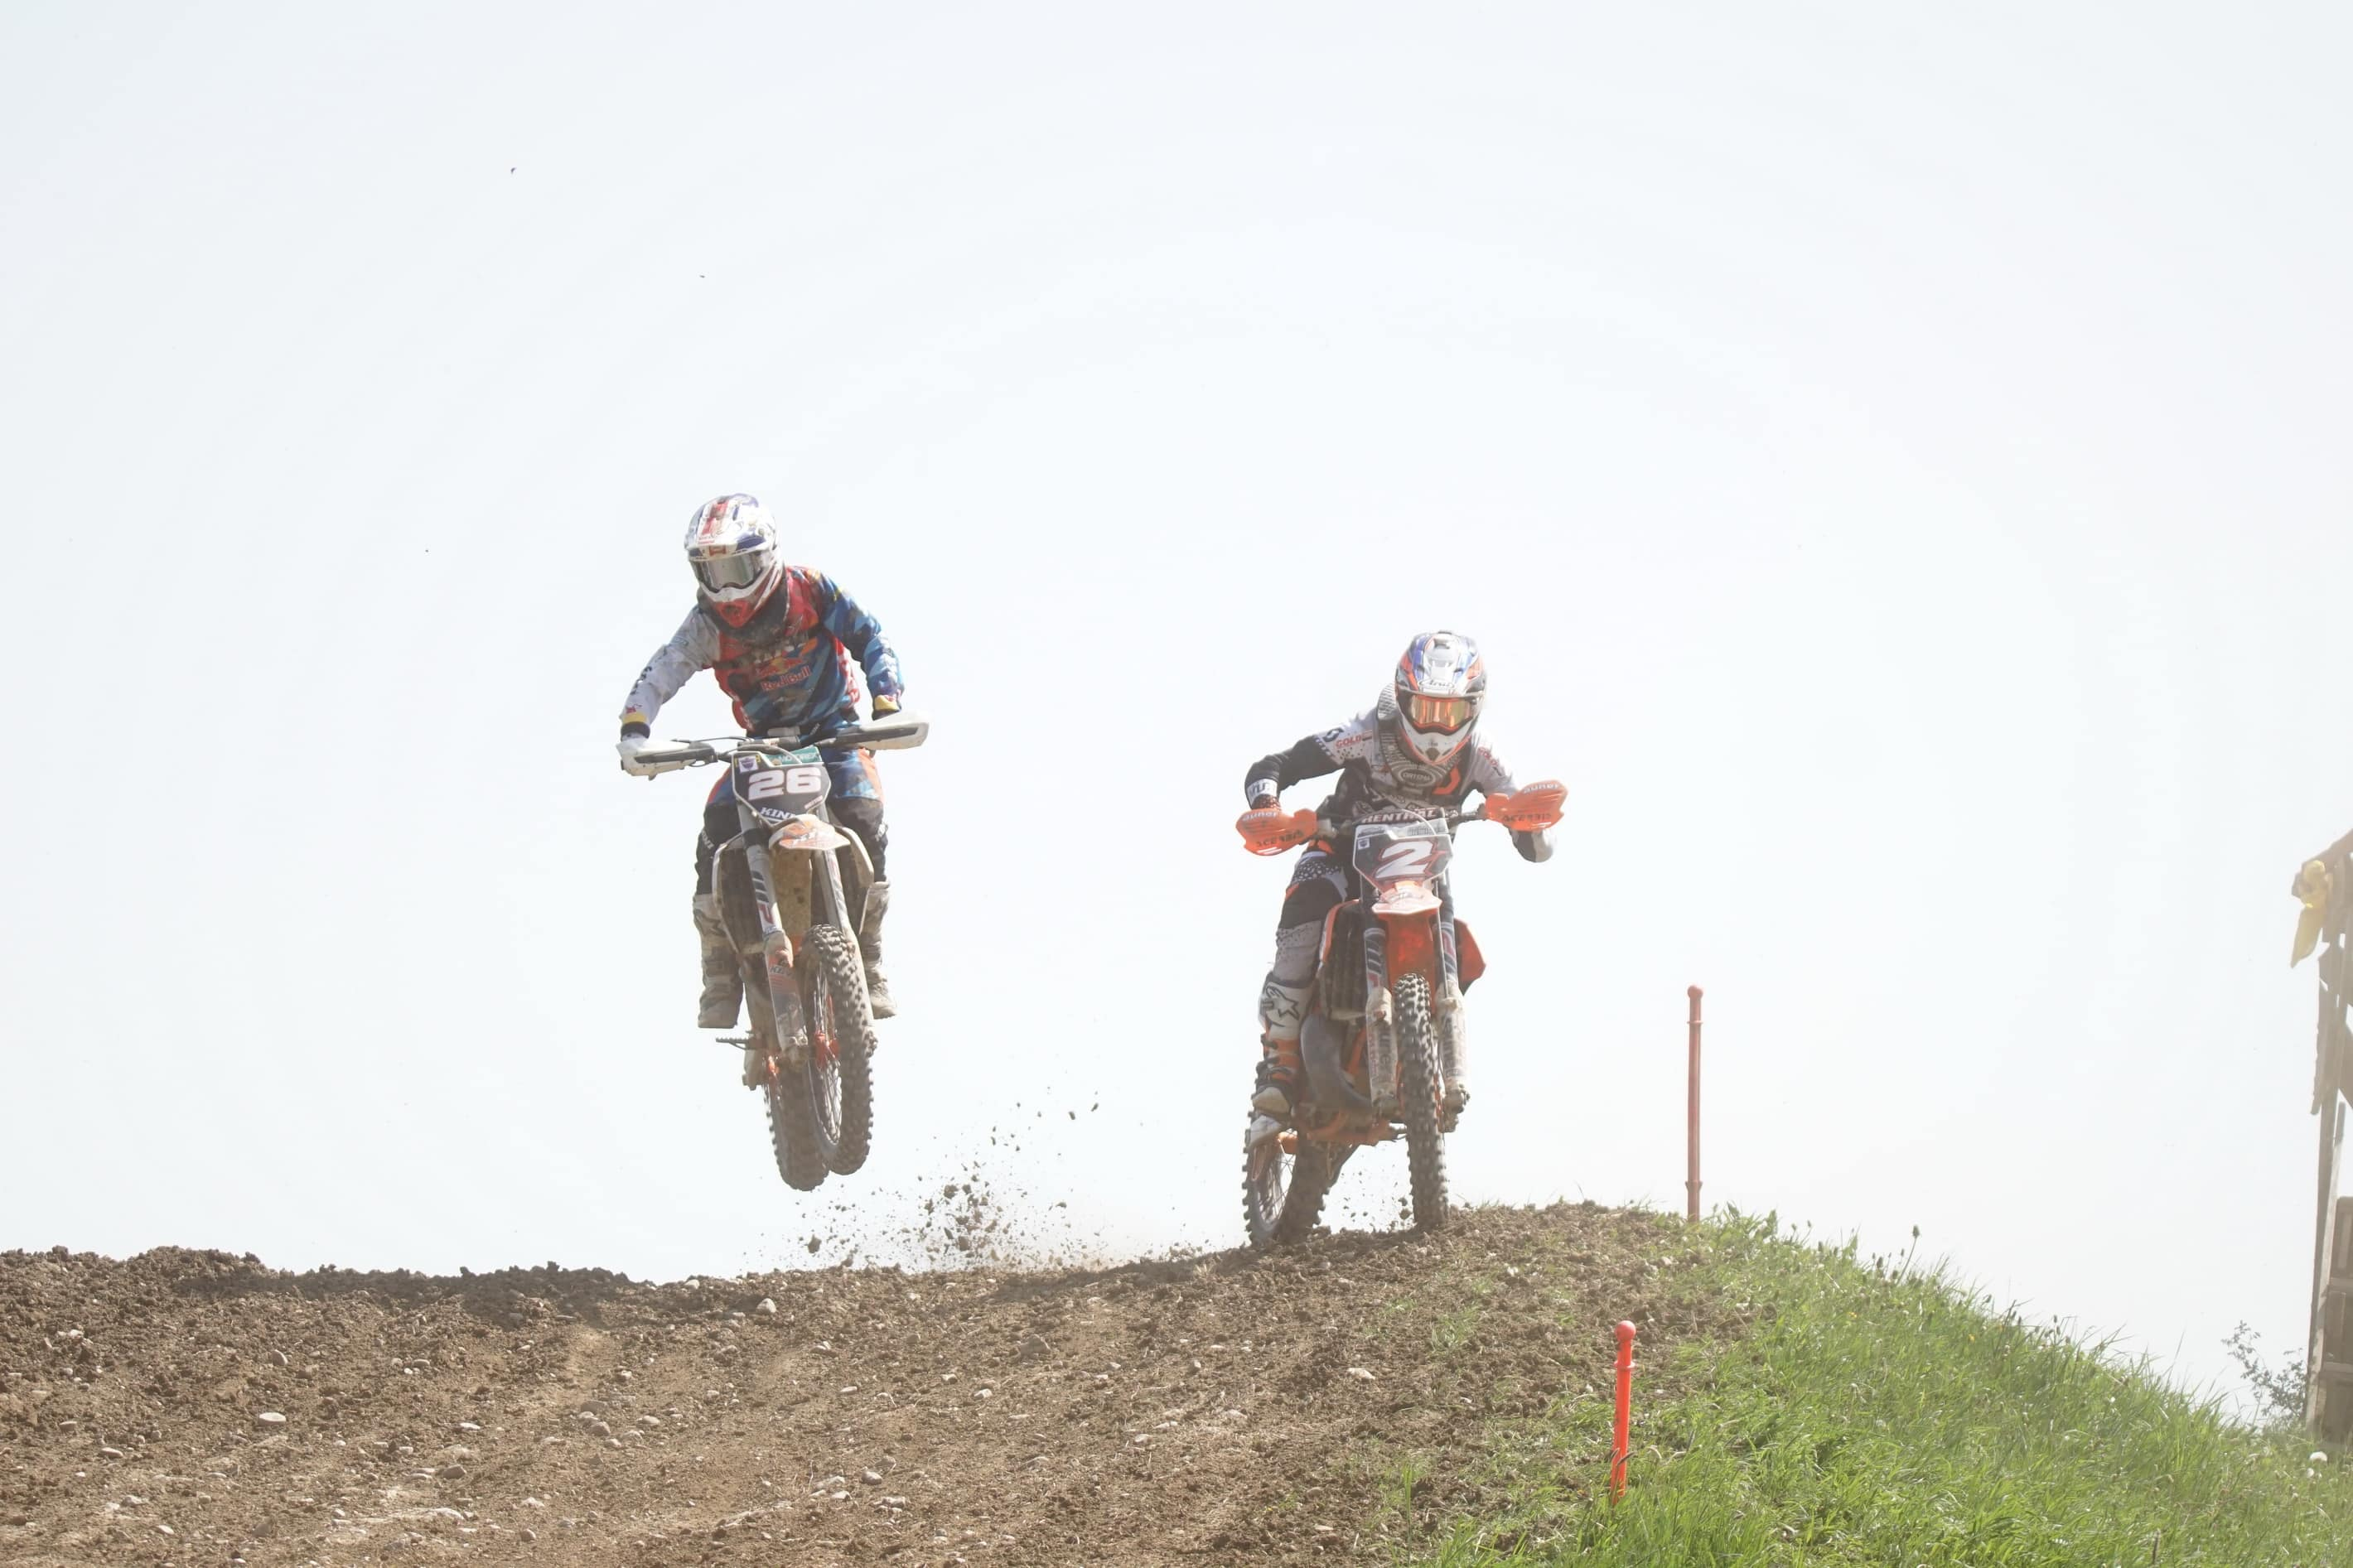 DSC 542_Moto Cross Sittendorf Teil1 am 29.04.2018